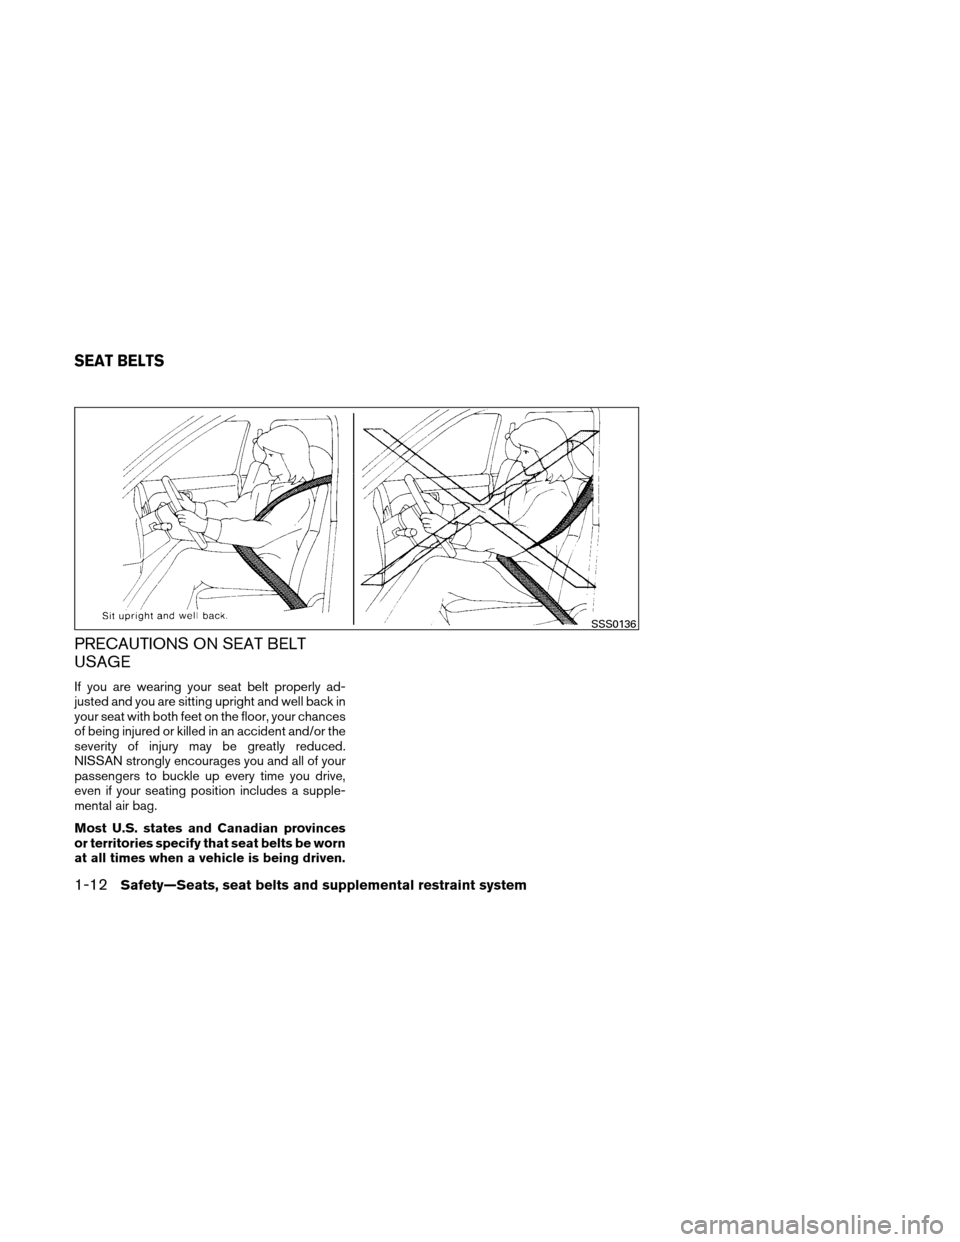 NISSAN VERSA HATCHBACK 2010 1.G Owners Manual, Page 31